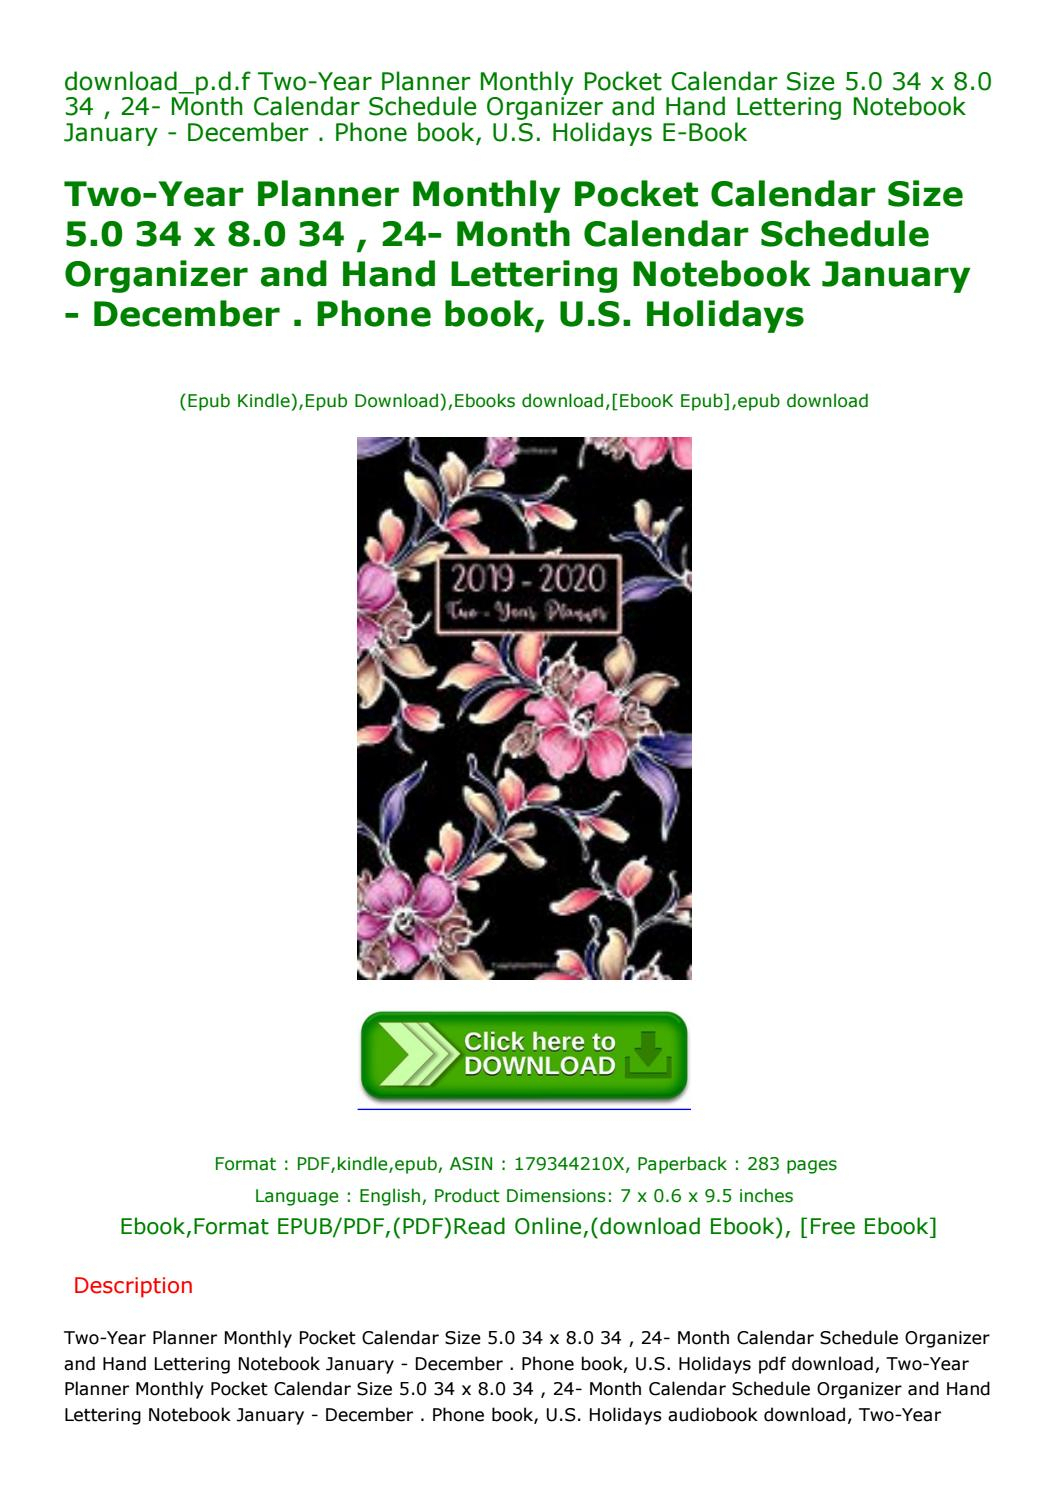 Two-Year Planner Monthly Pocket Calendar Size 5.0 34 X 8.0 within Pocket Calendar Free Online